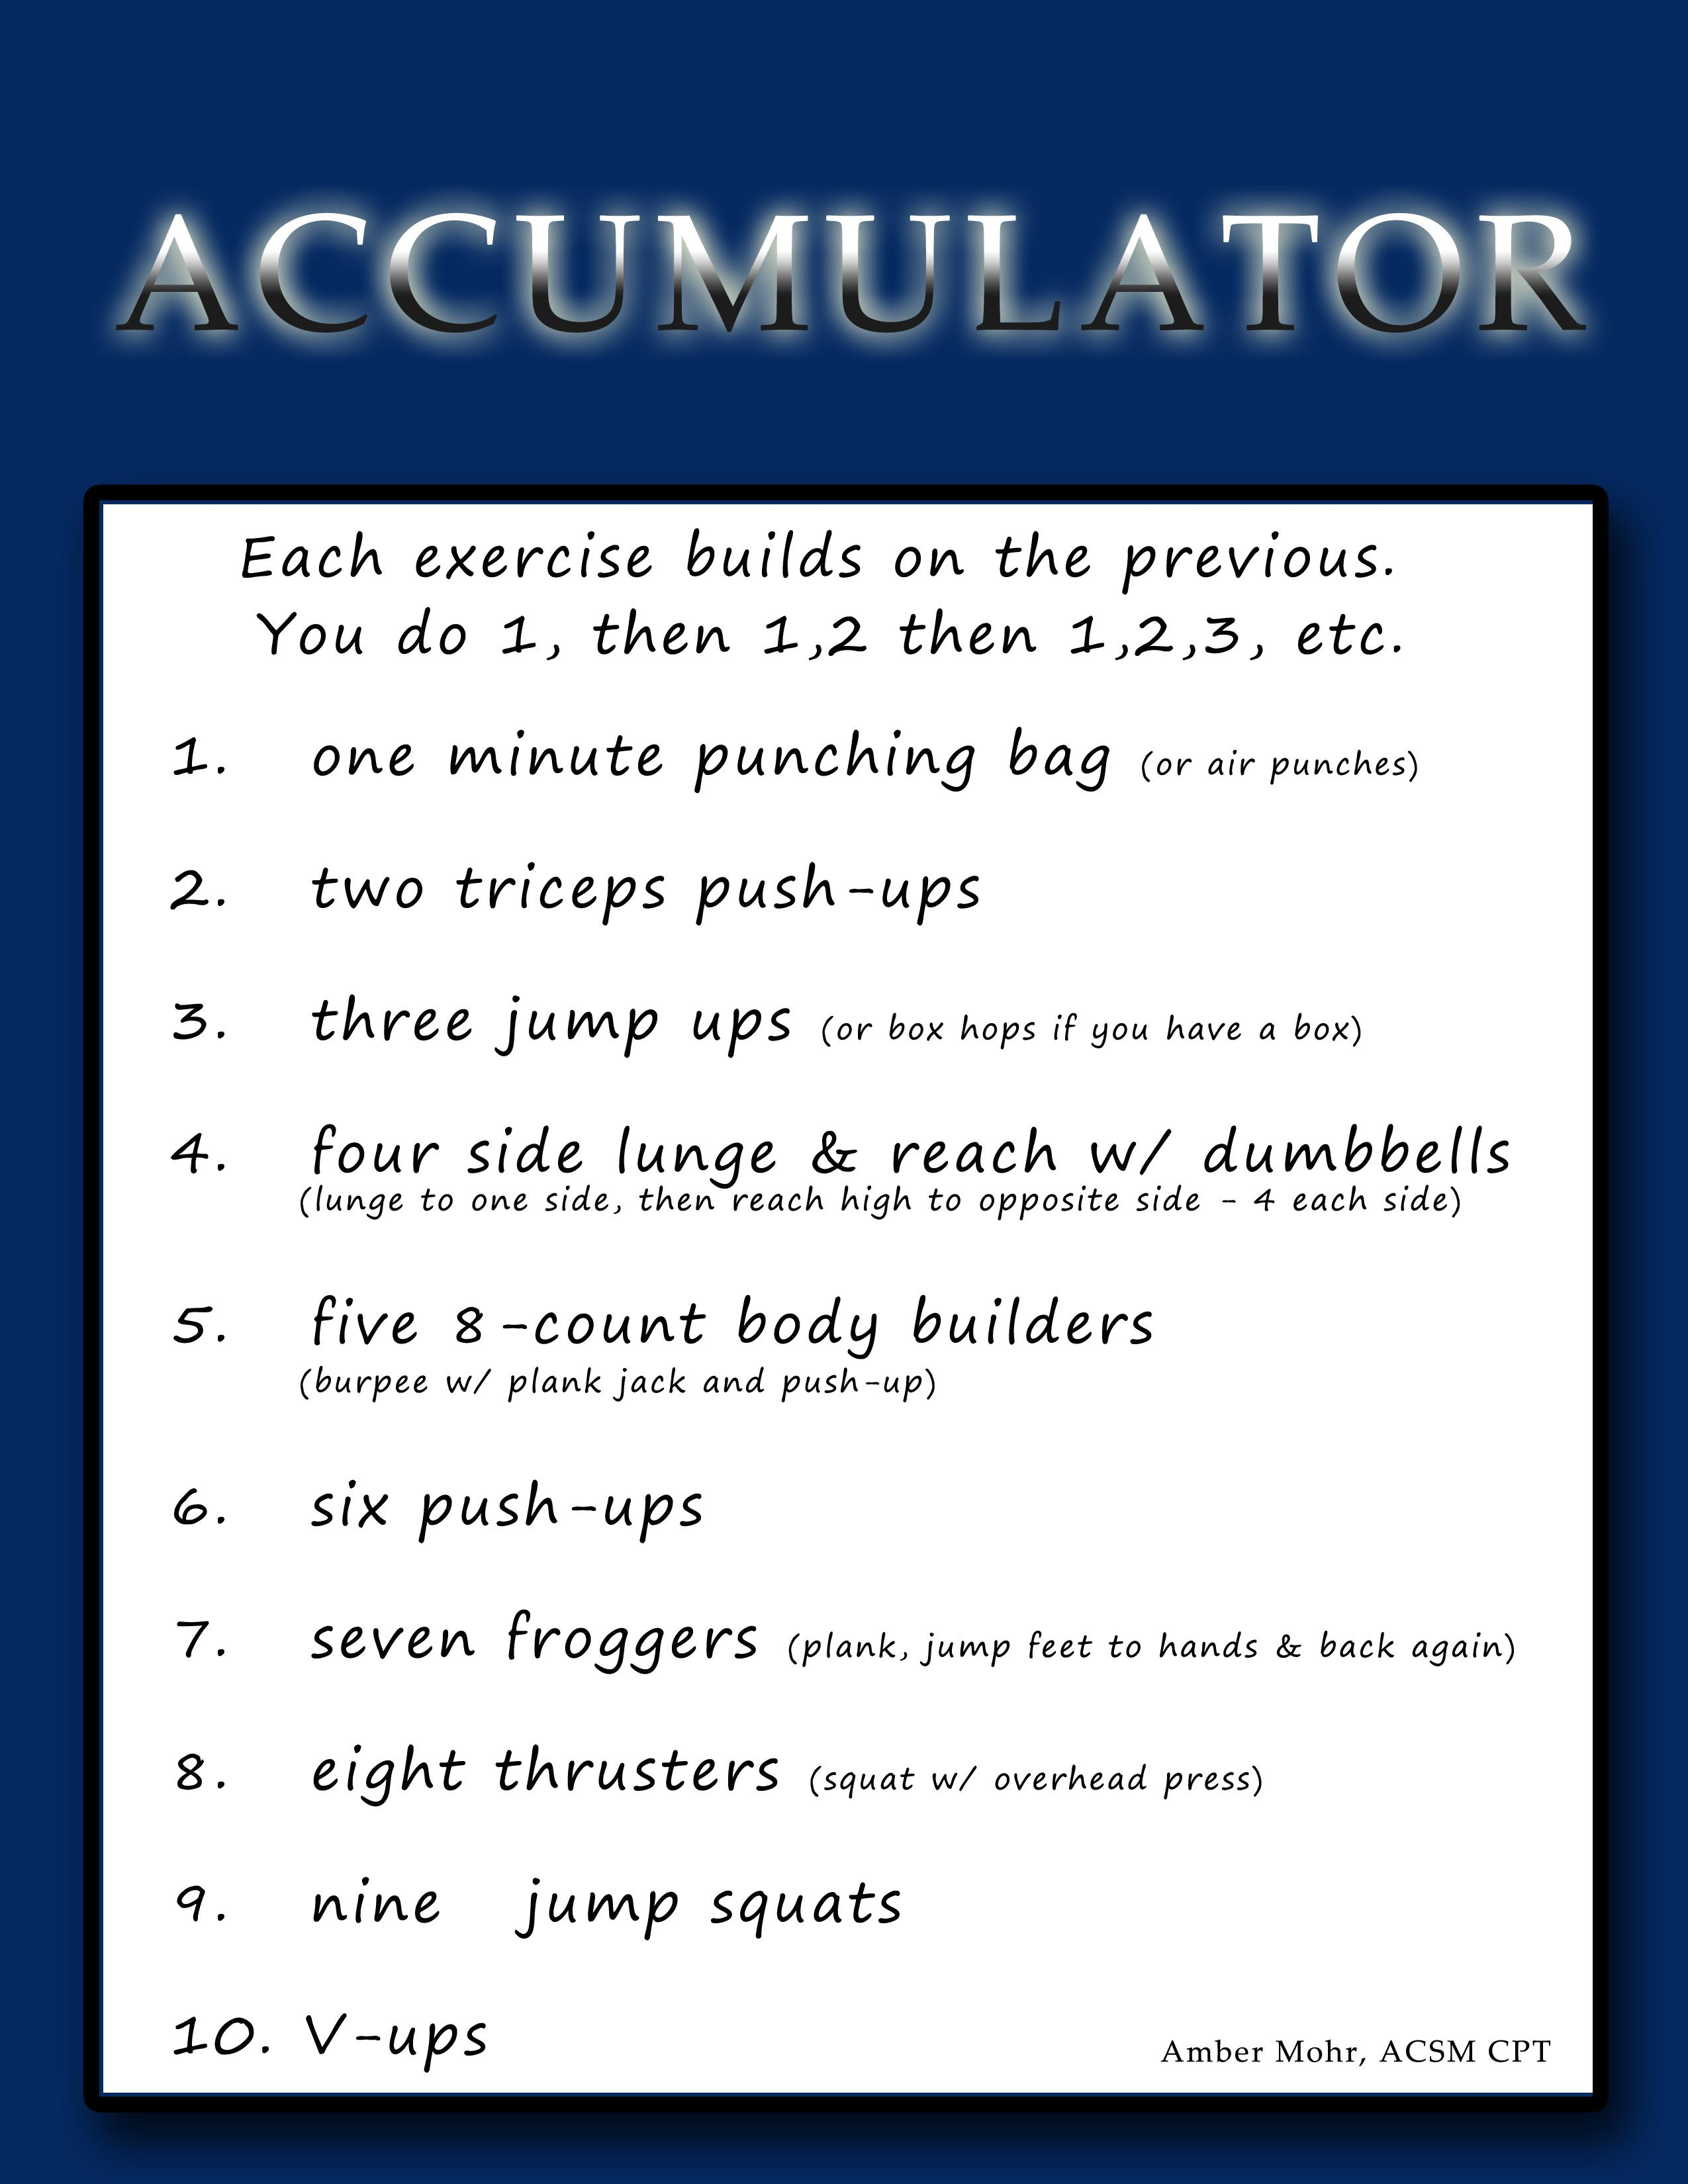 Accumulator Circuit Workout Each Exercise Builds On The One Before It Fitness Class Total Body Workout Strength Workout